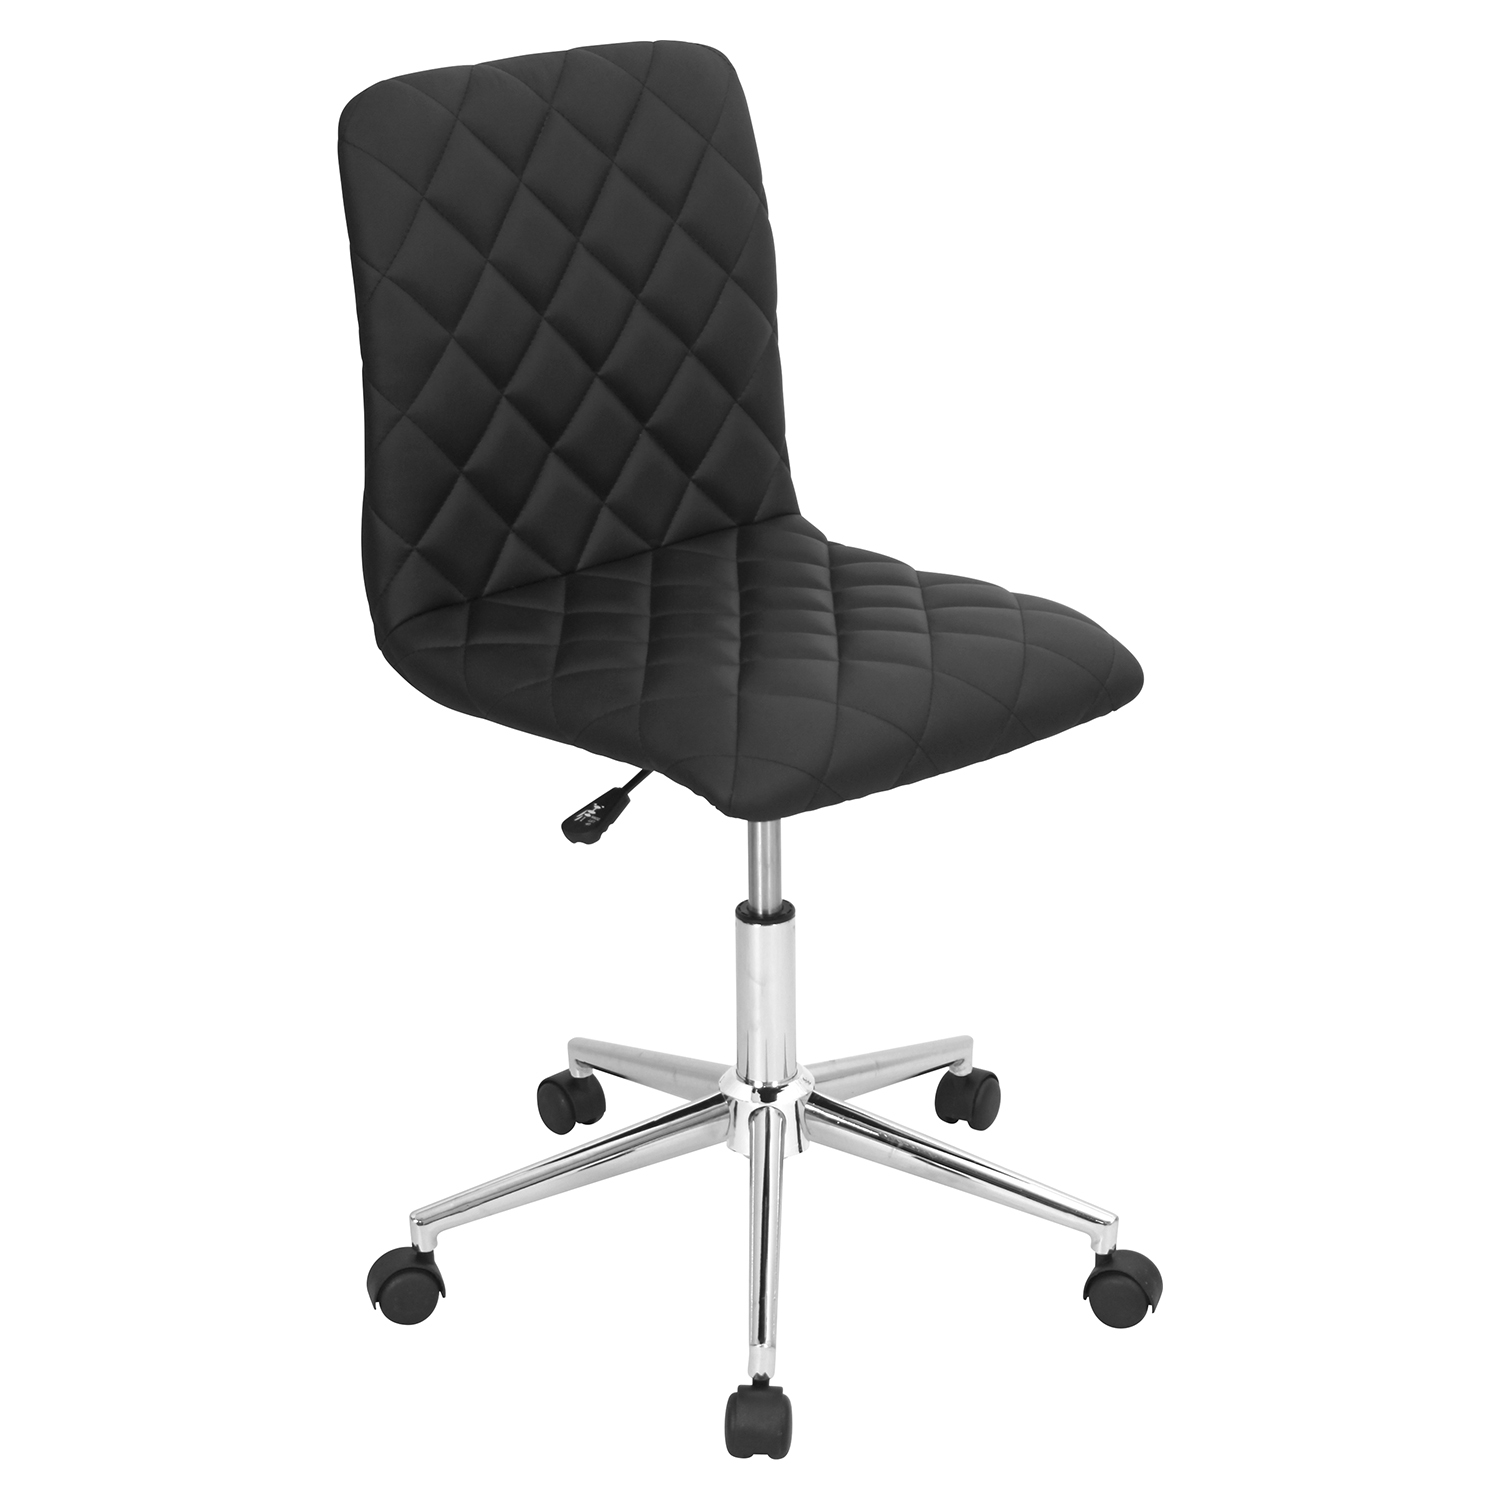 Caviar Height Adjustable Office Chair - Swivel, Black